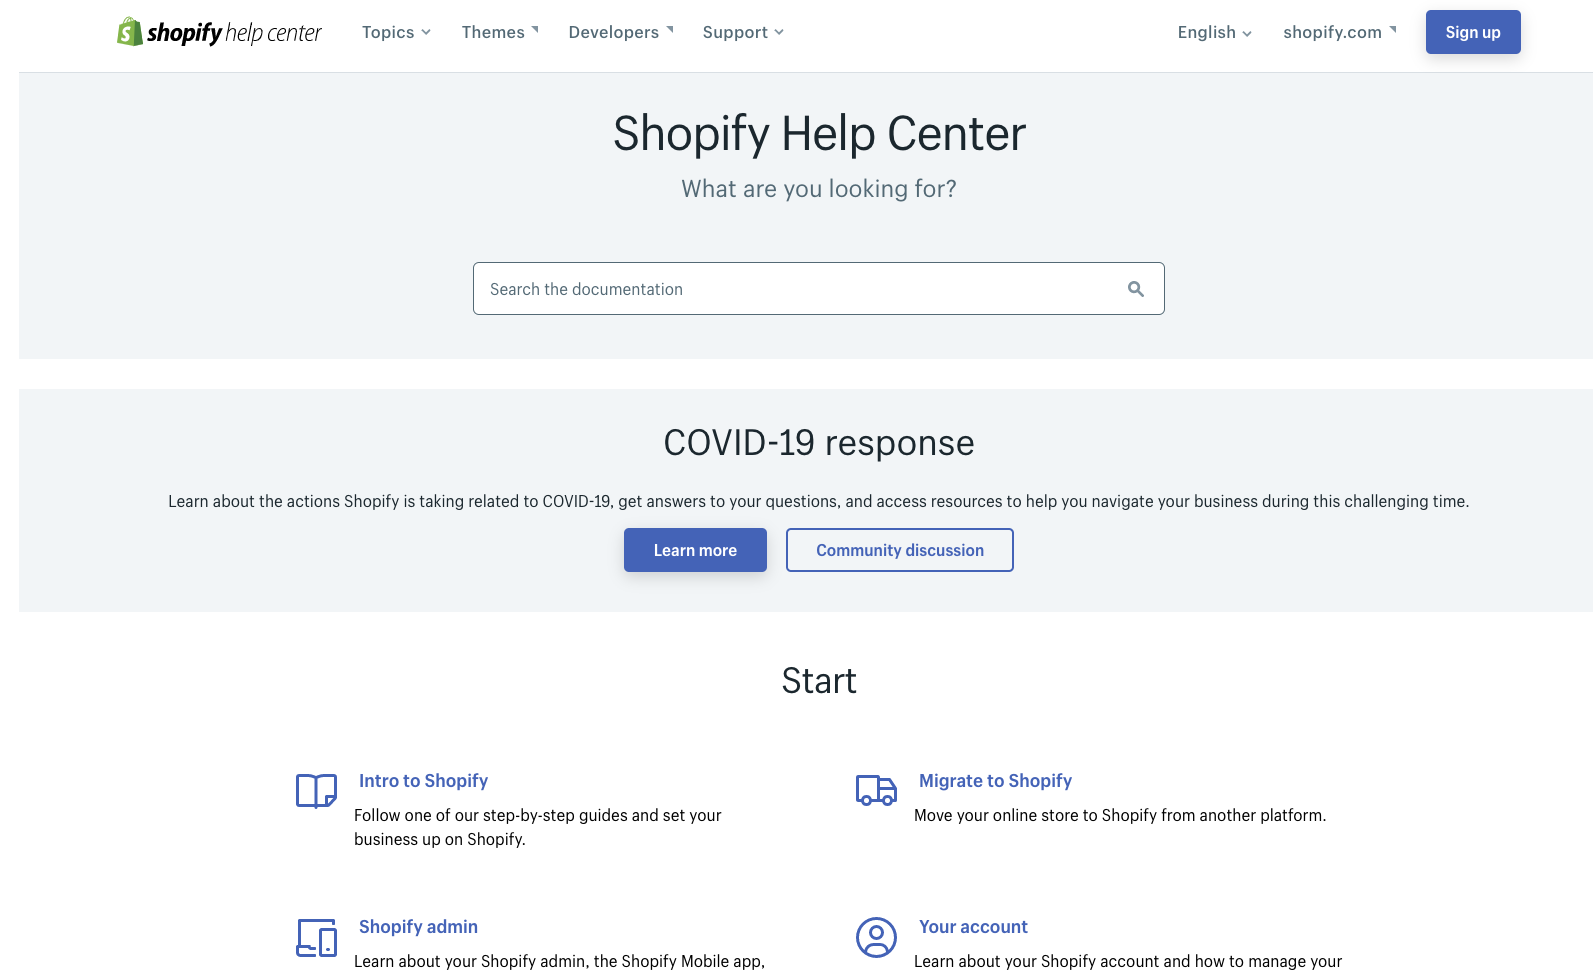 Shopify help center page